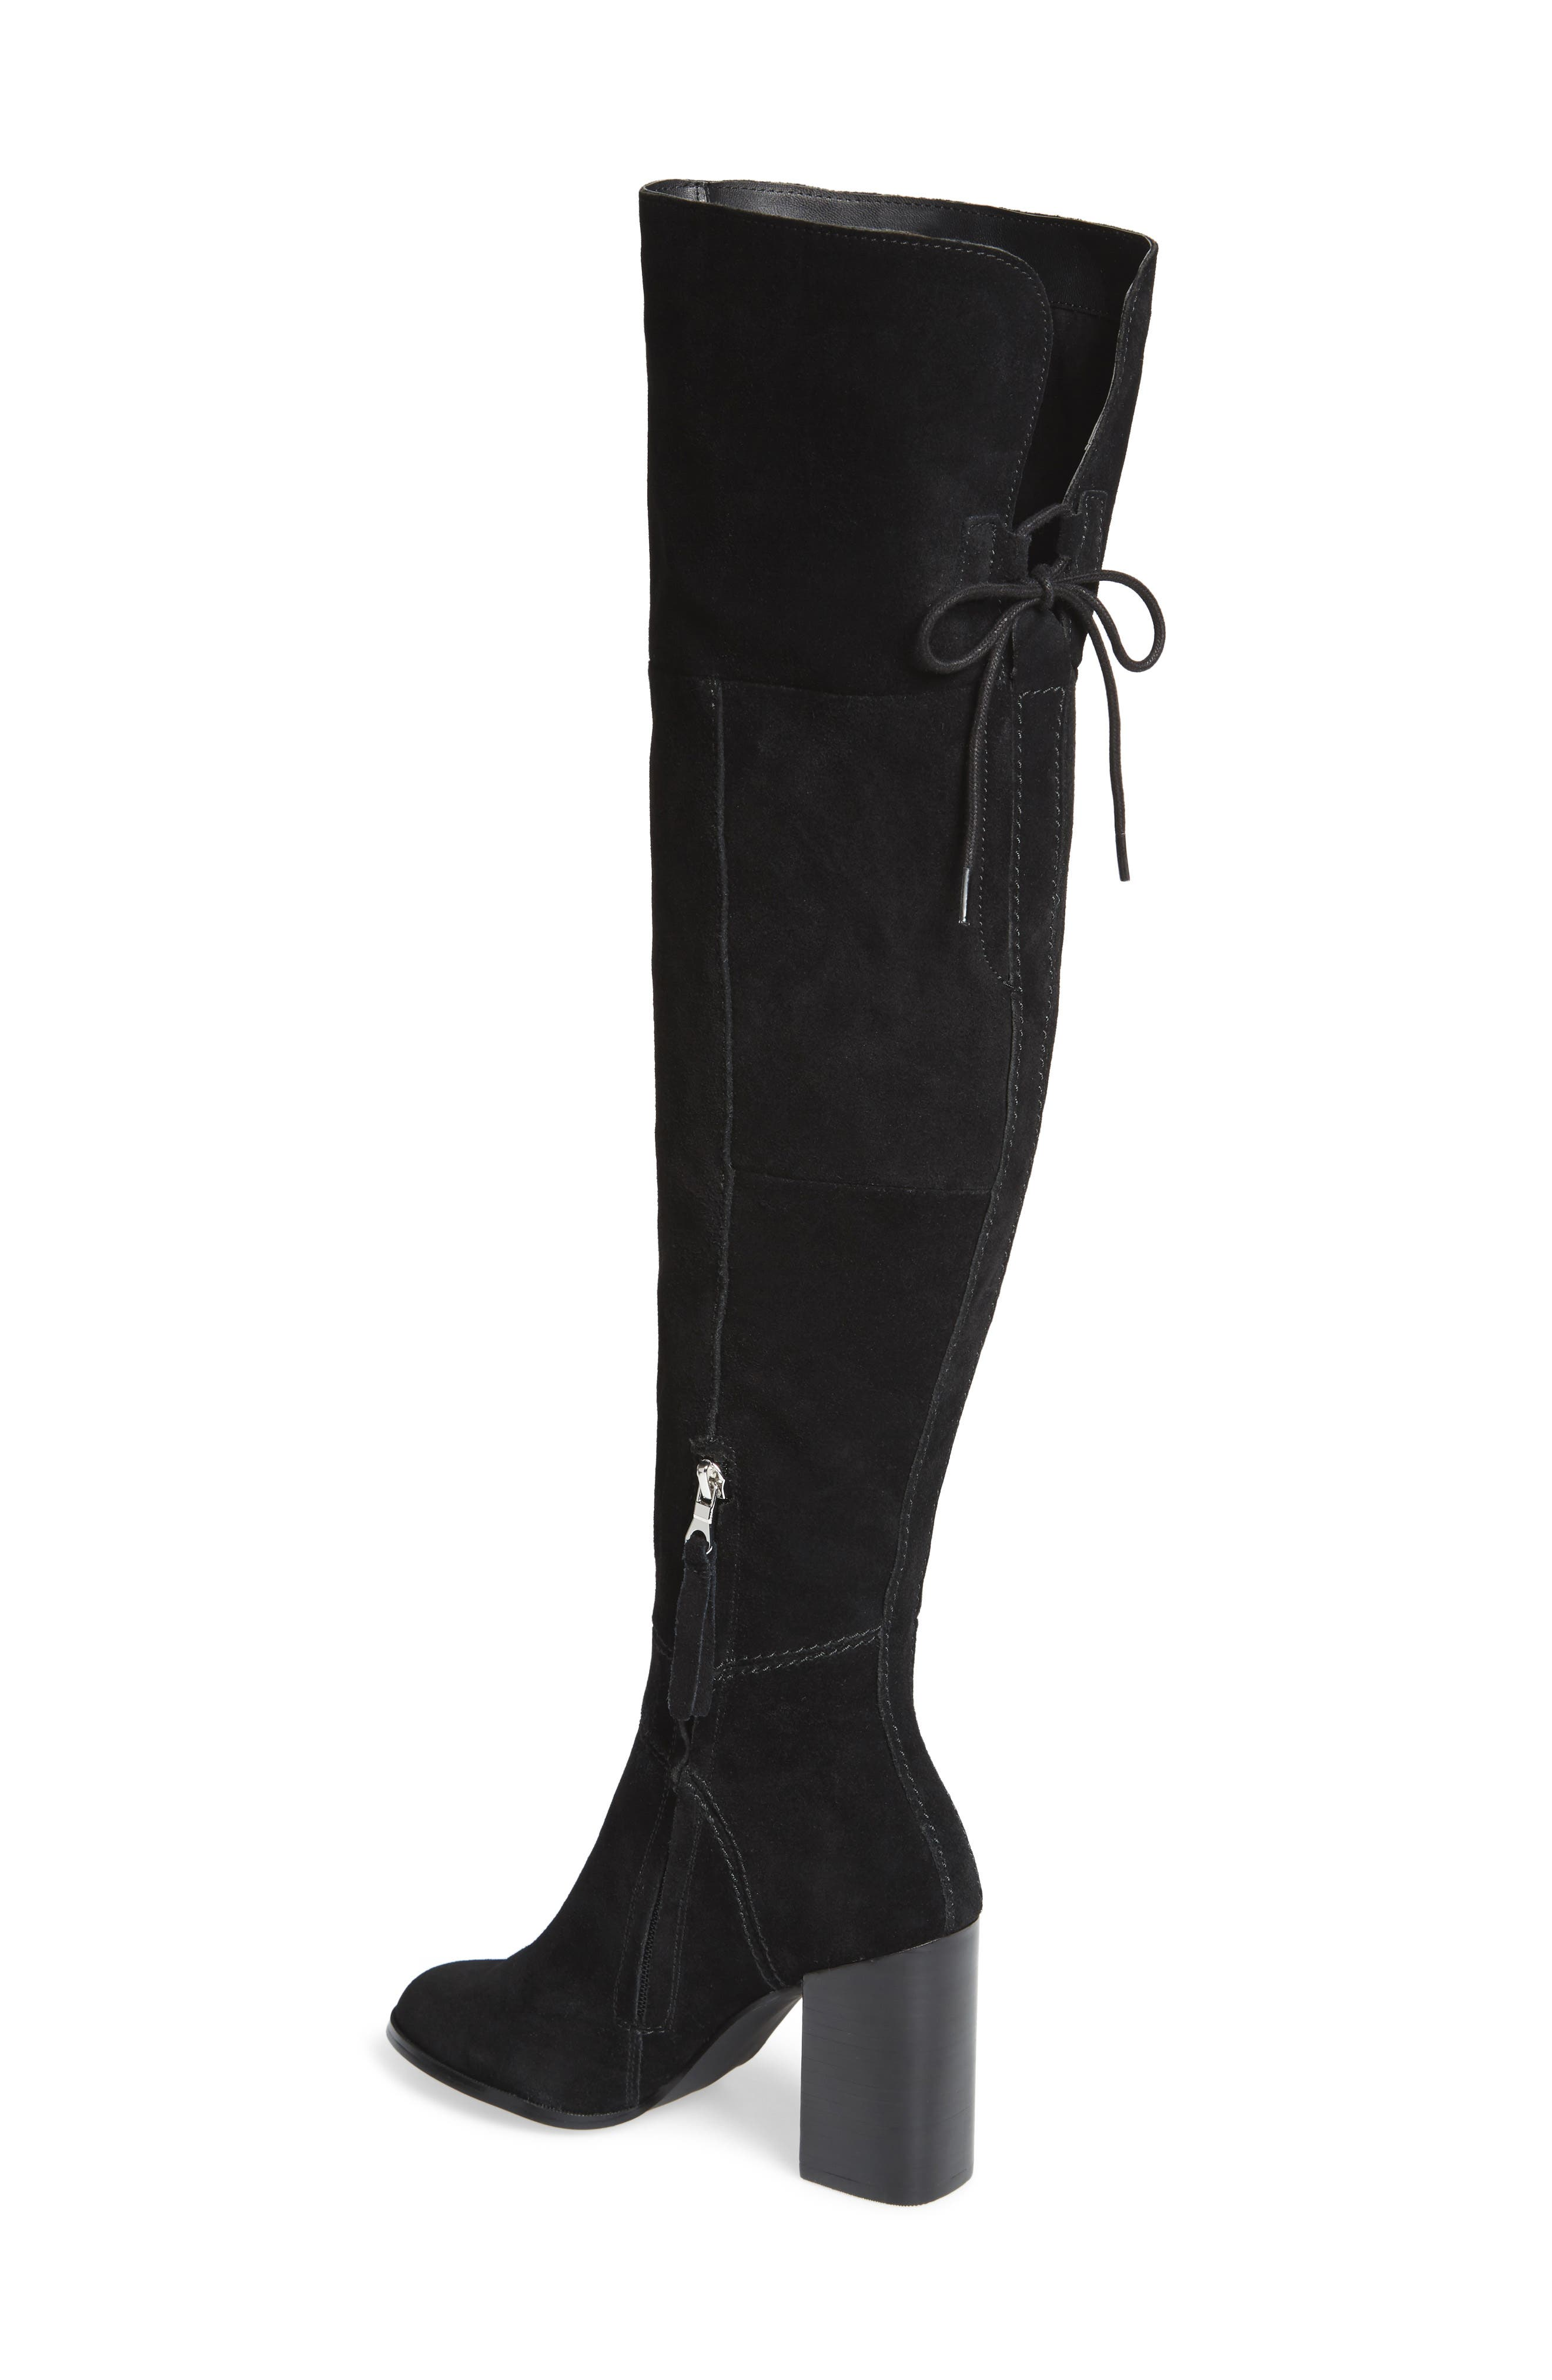 Novela Cuffable Over the Knee Boot,                             Alternate thumbnail 2, color,                             006